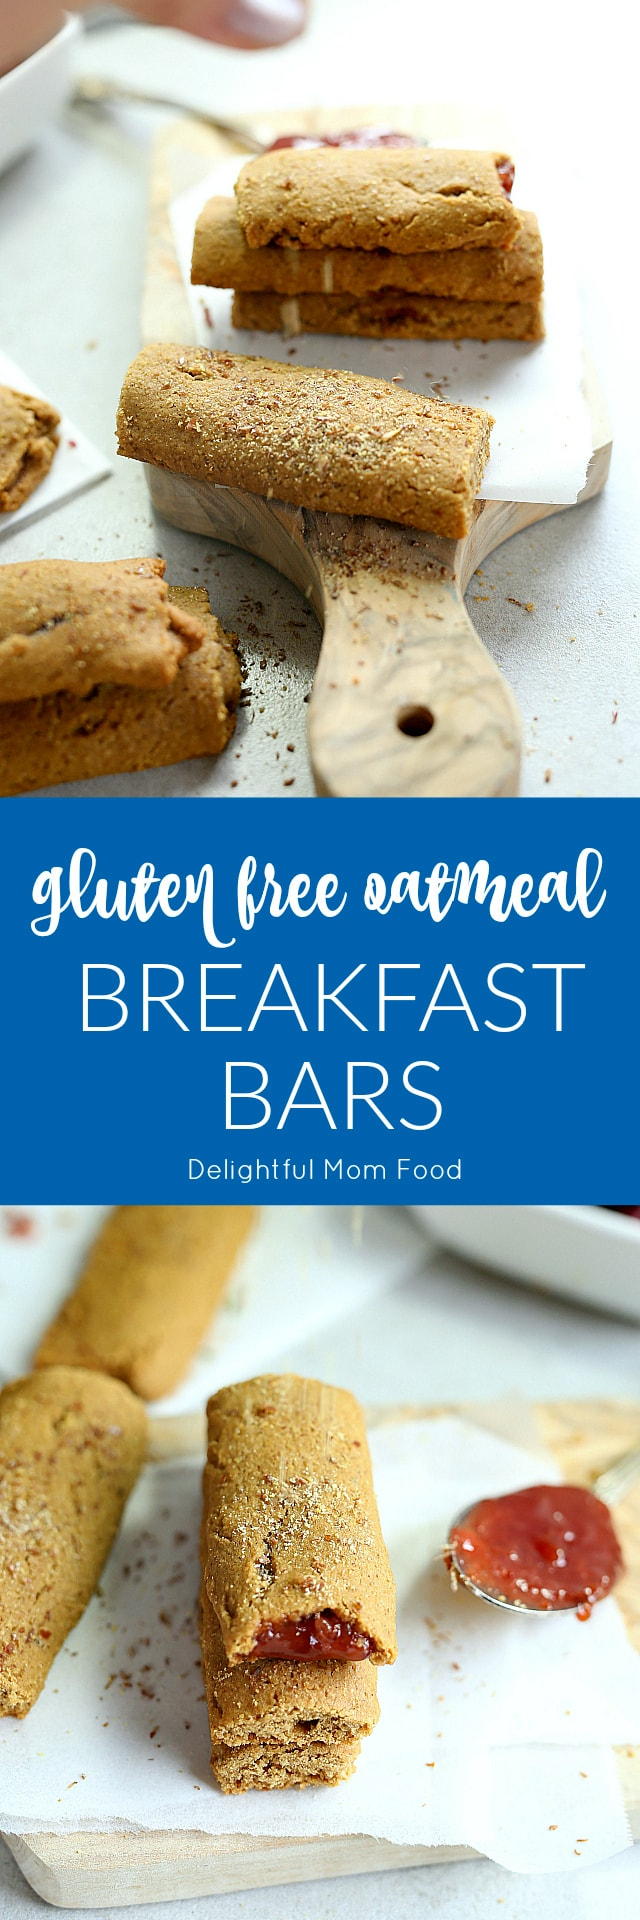 Oatmeal Breakfast Bars   Gluten Free, Dairy Free, Nut Free   Less than 30 minutes!